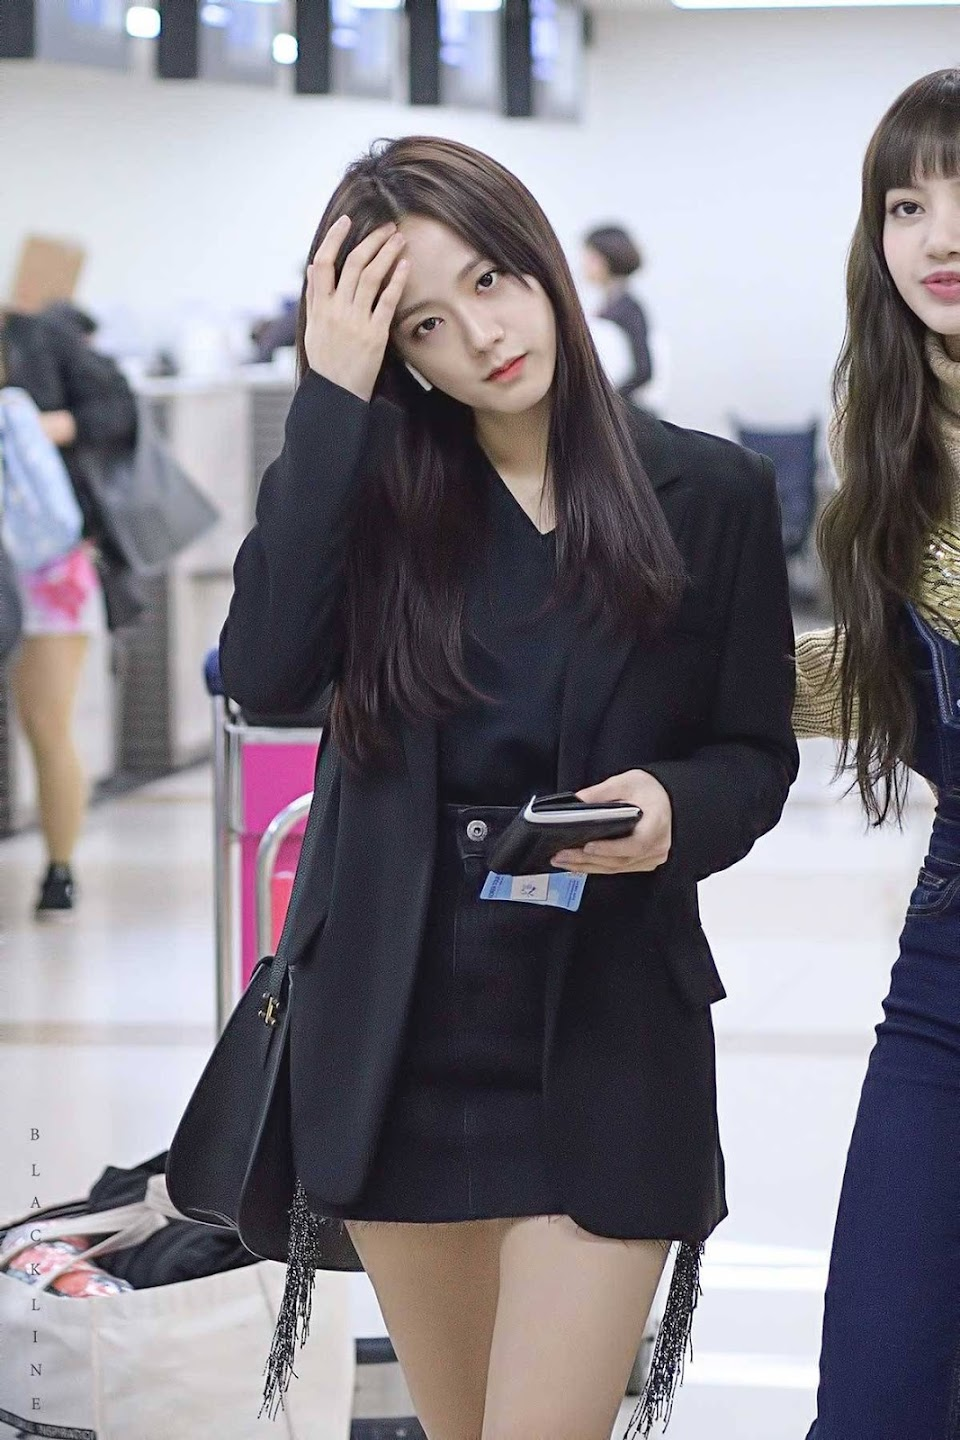 blackpink-jisoo-airport-fashion-27-march-2018-gimpo-23